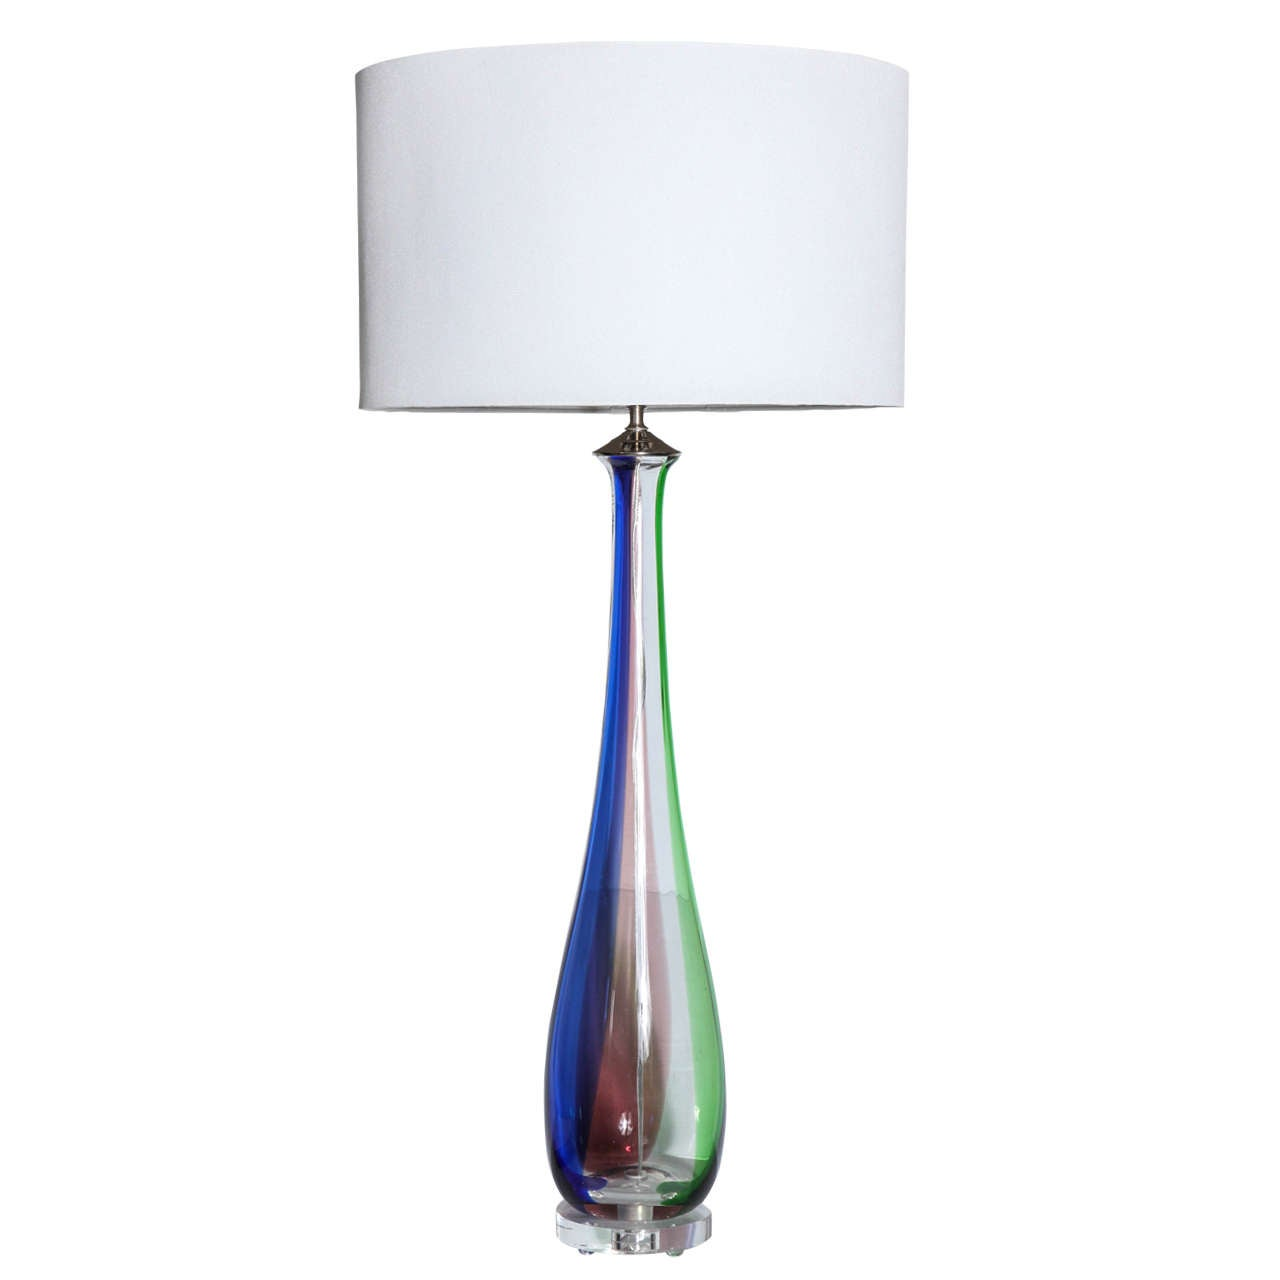 tall slim murano glass table lamps at 1stdibs. Black Bedroom Furniture Sets. Home Design Ideas